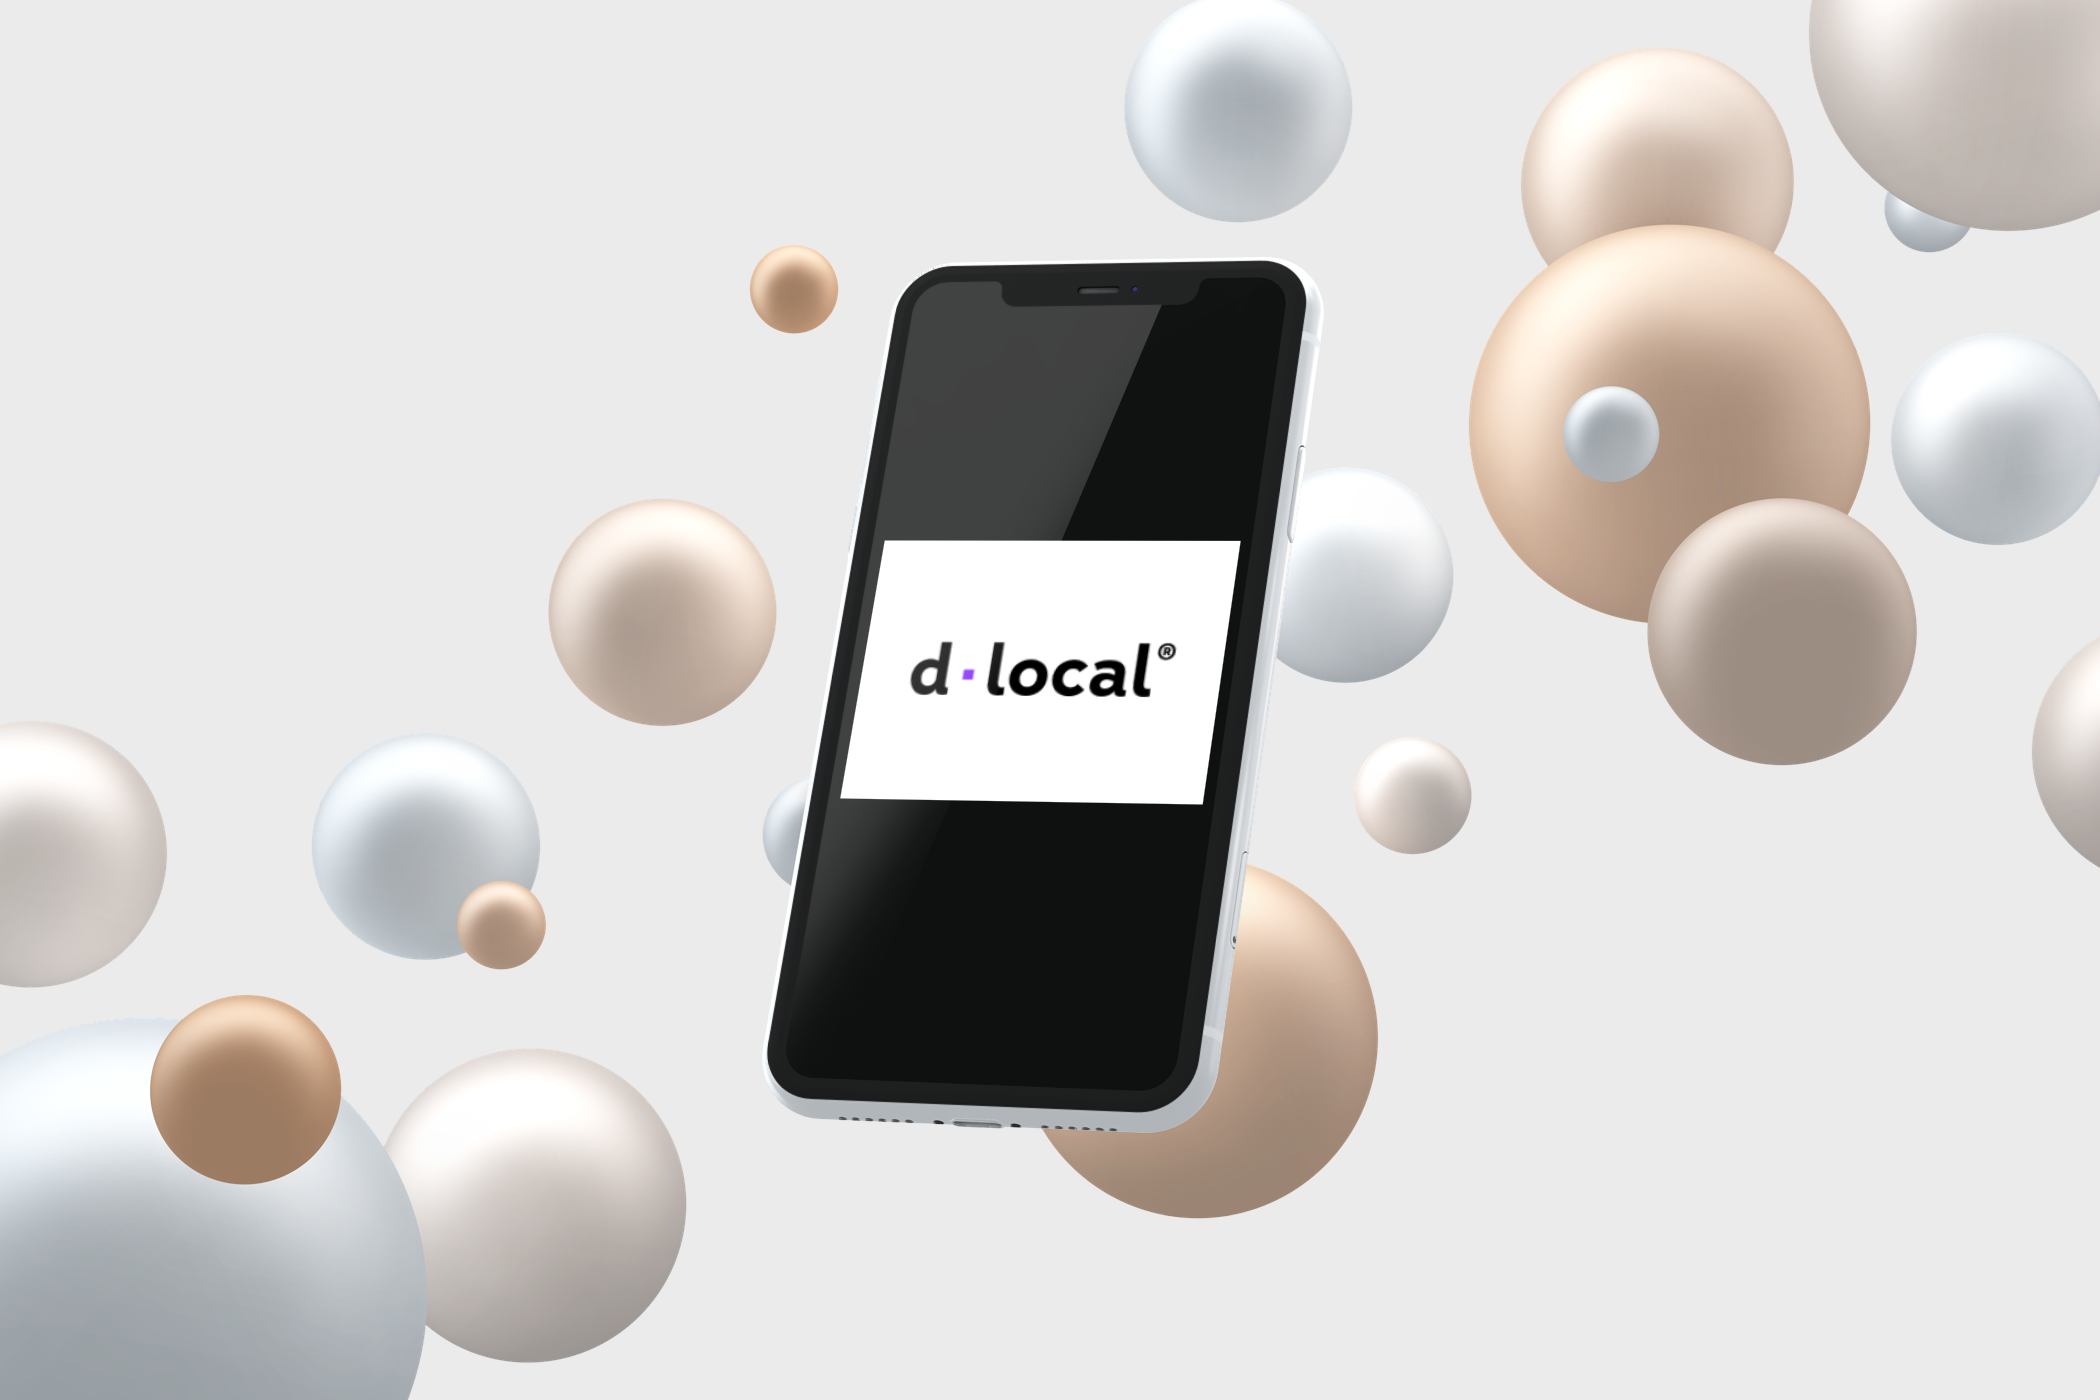 DLocal Initial Public Offering